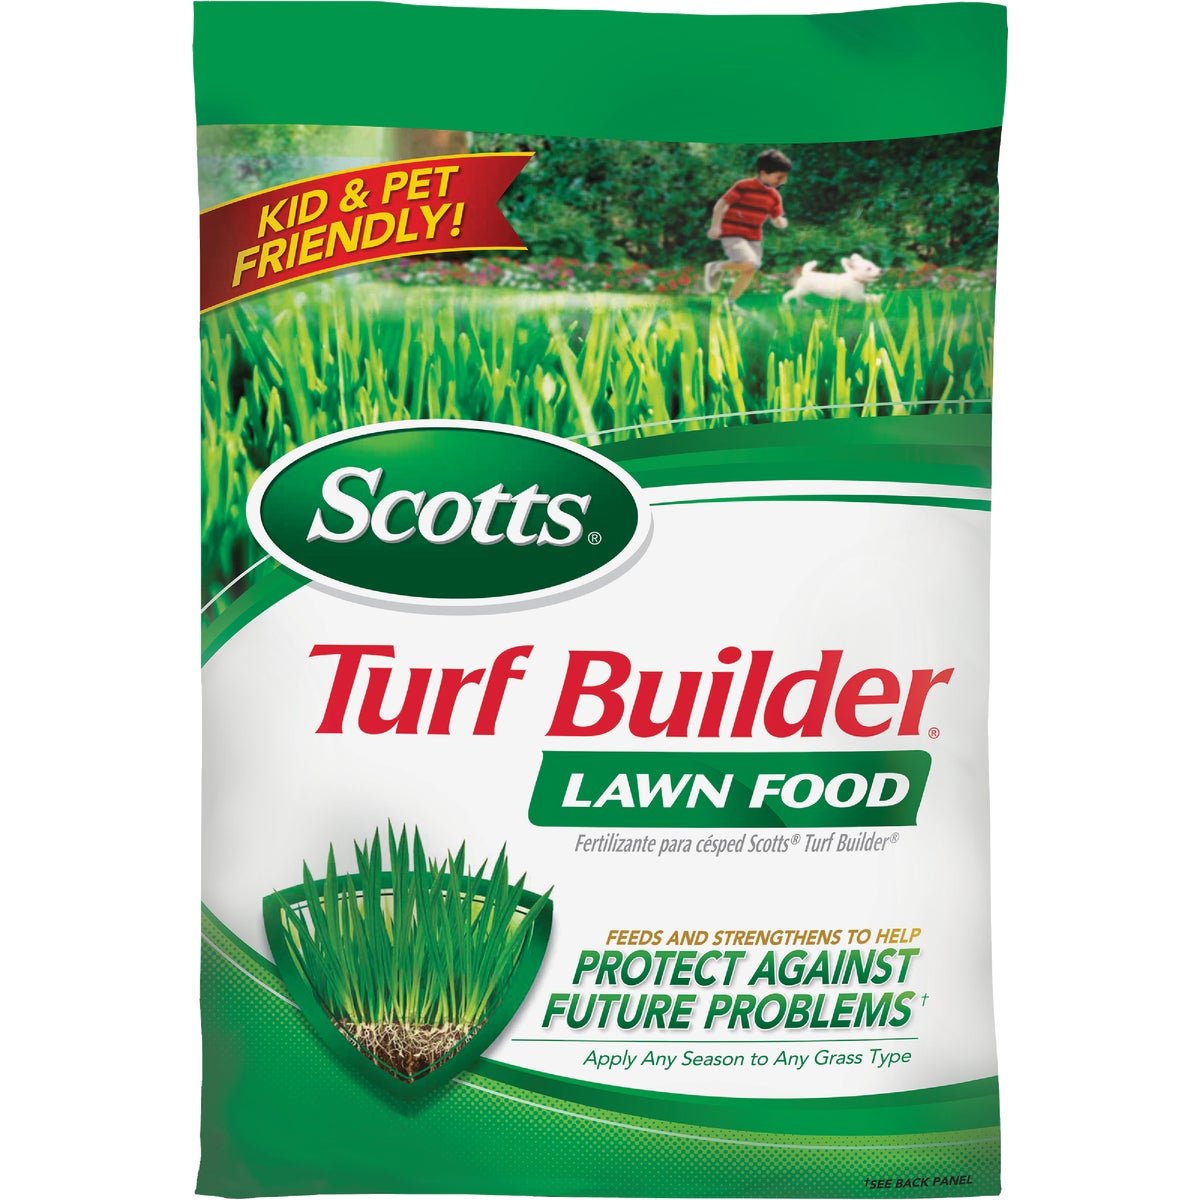 5M TURF BUILDR LAWN FOOD - 22305 by Scotts Company